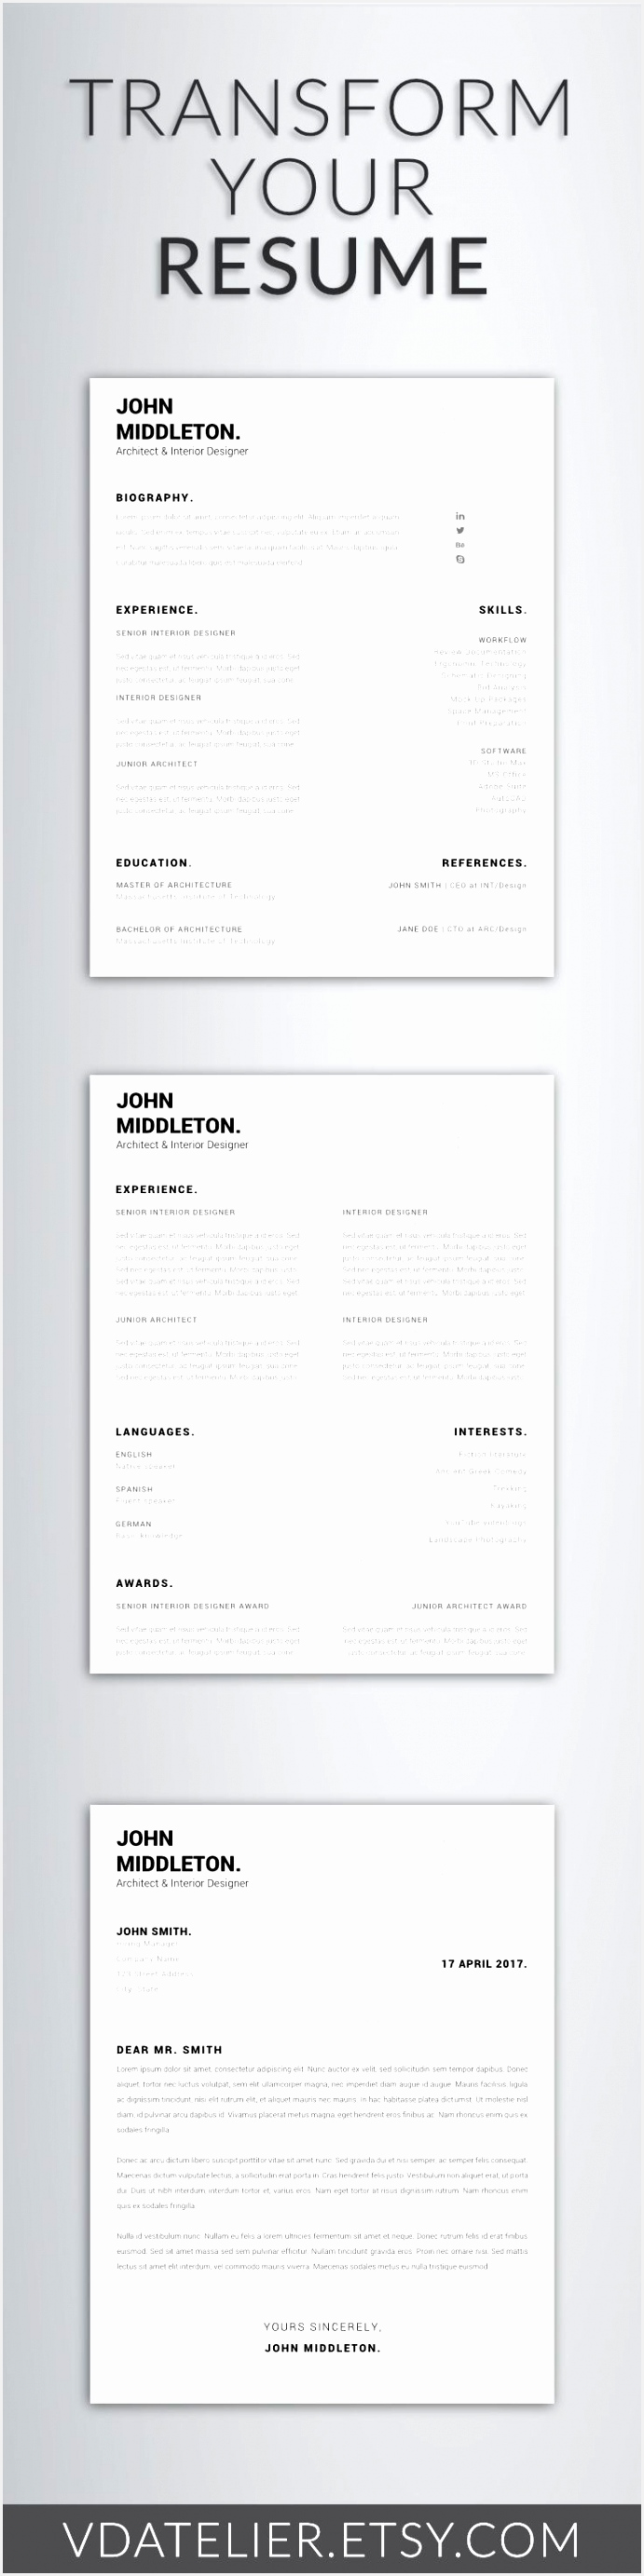 Head Teacher Resume Ucq3n Inspirational Modern Resume Template New Resume Template Cv Template Cover Letter Of Head Teacher Resume Tawan Fresh Substitute Teacher Resume Samples Fresh Sample Resume for Head